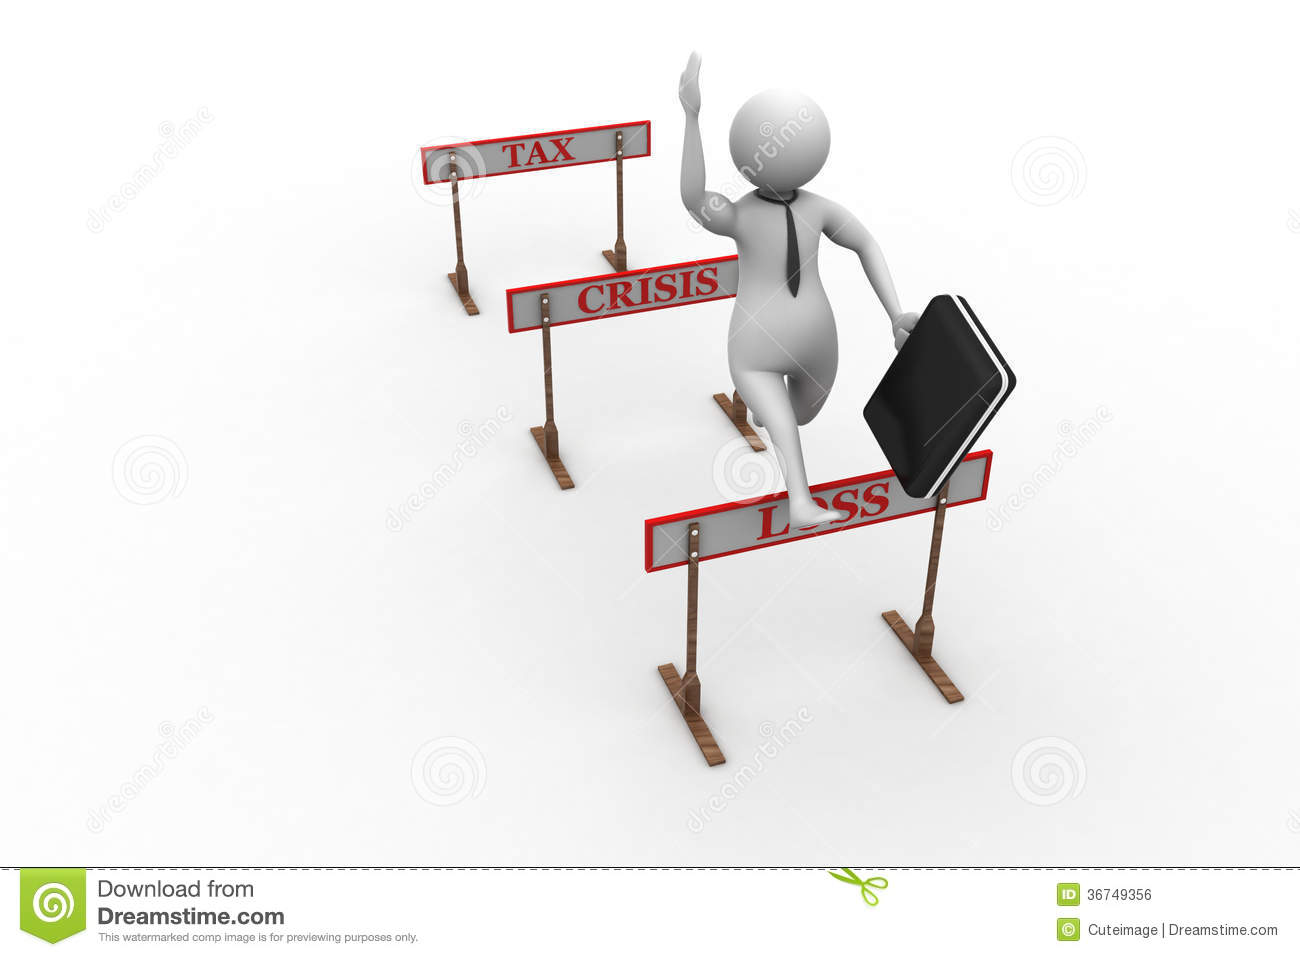 d-man-jumping-over-hurdle-obstacle-titled-tax-crisis-loss-business-concept-36749356.jpg